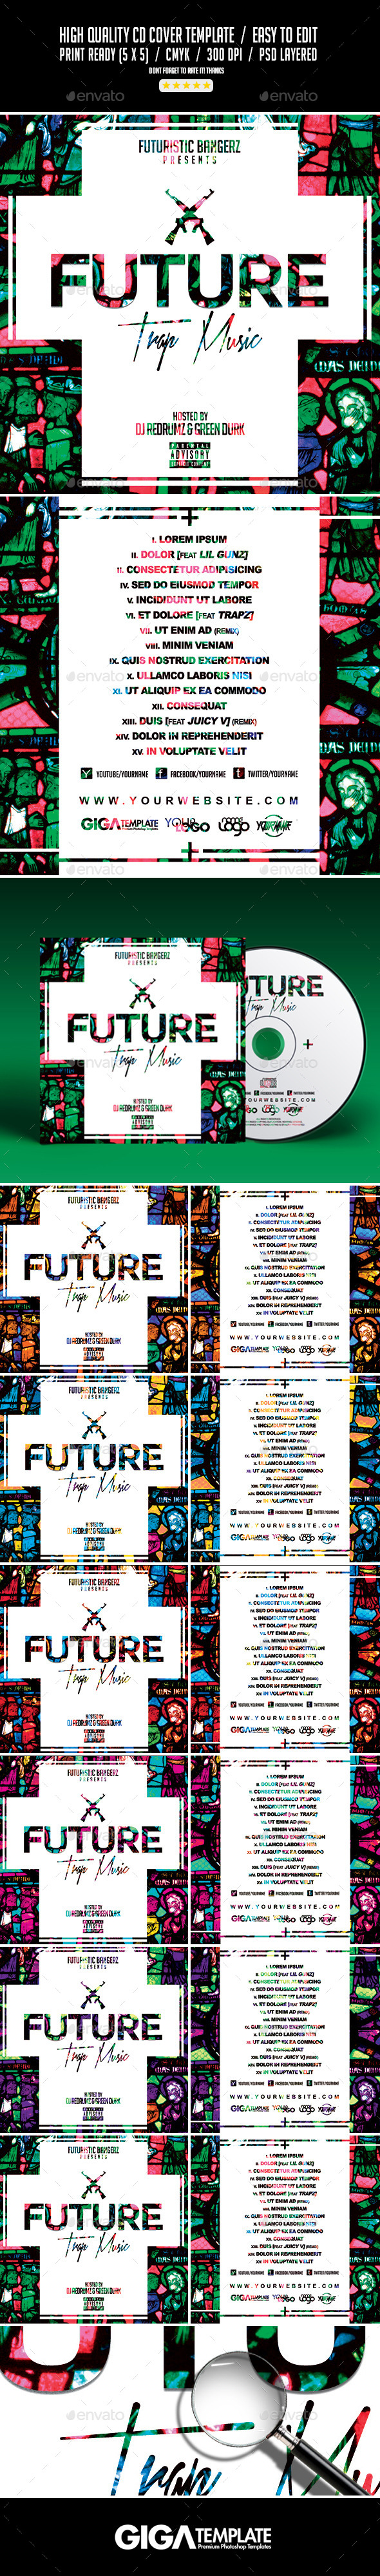 GraphicRiver Future Trap Music Mixtape Album Cover Template 11061320